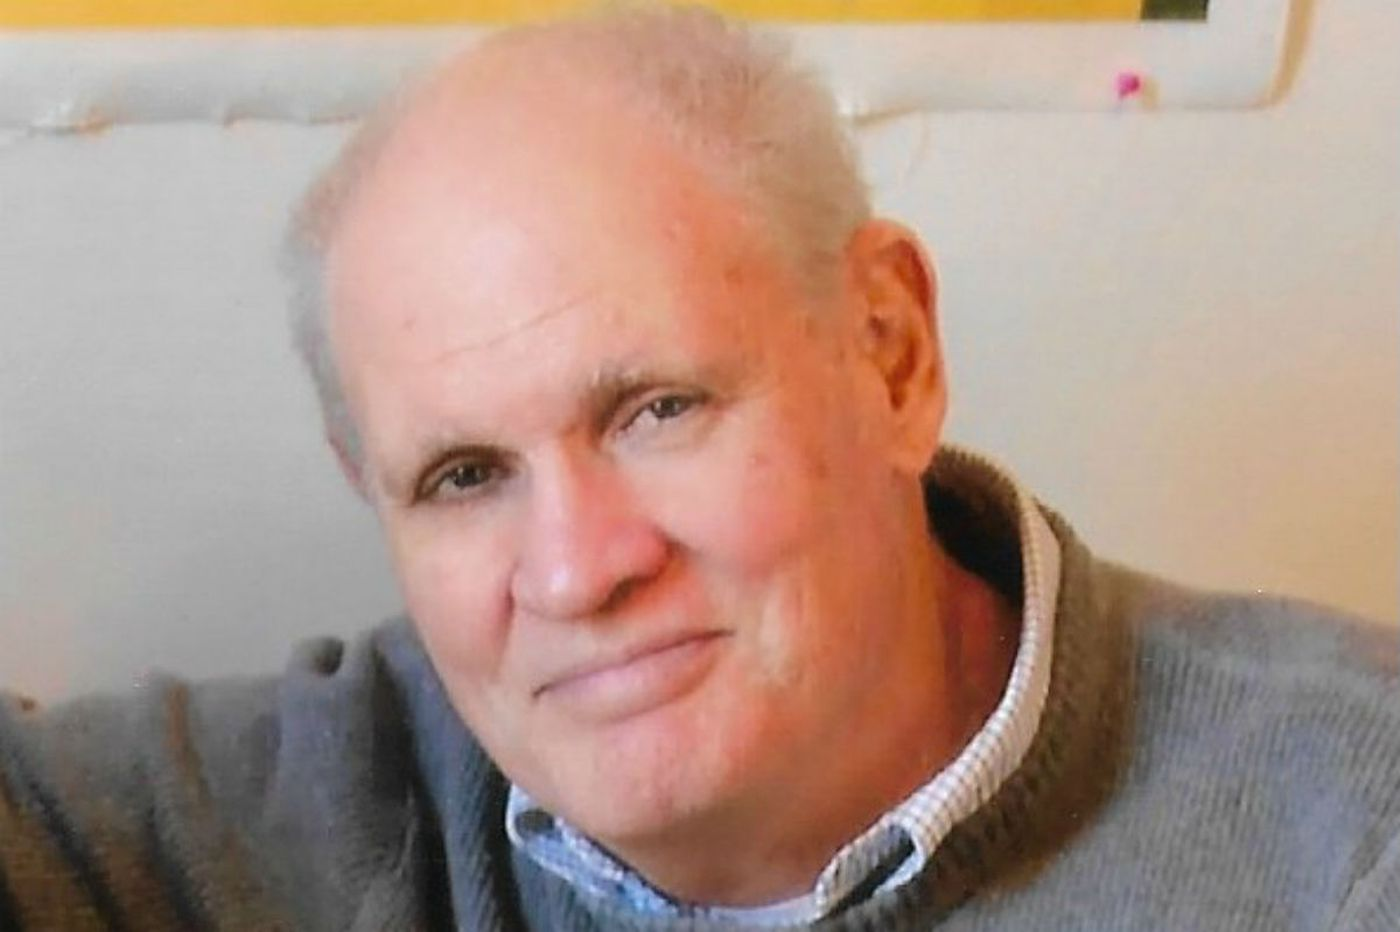 William Raftery, 73, Inquirer editor for 33 years